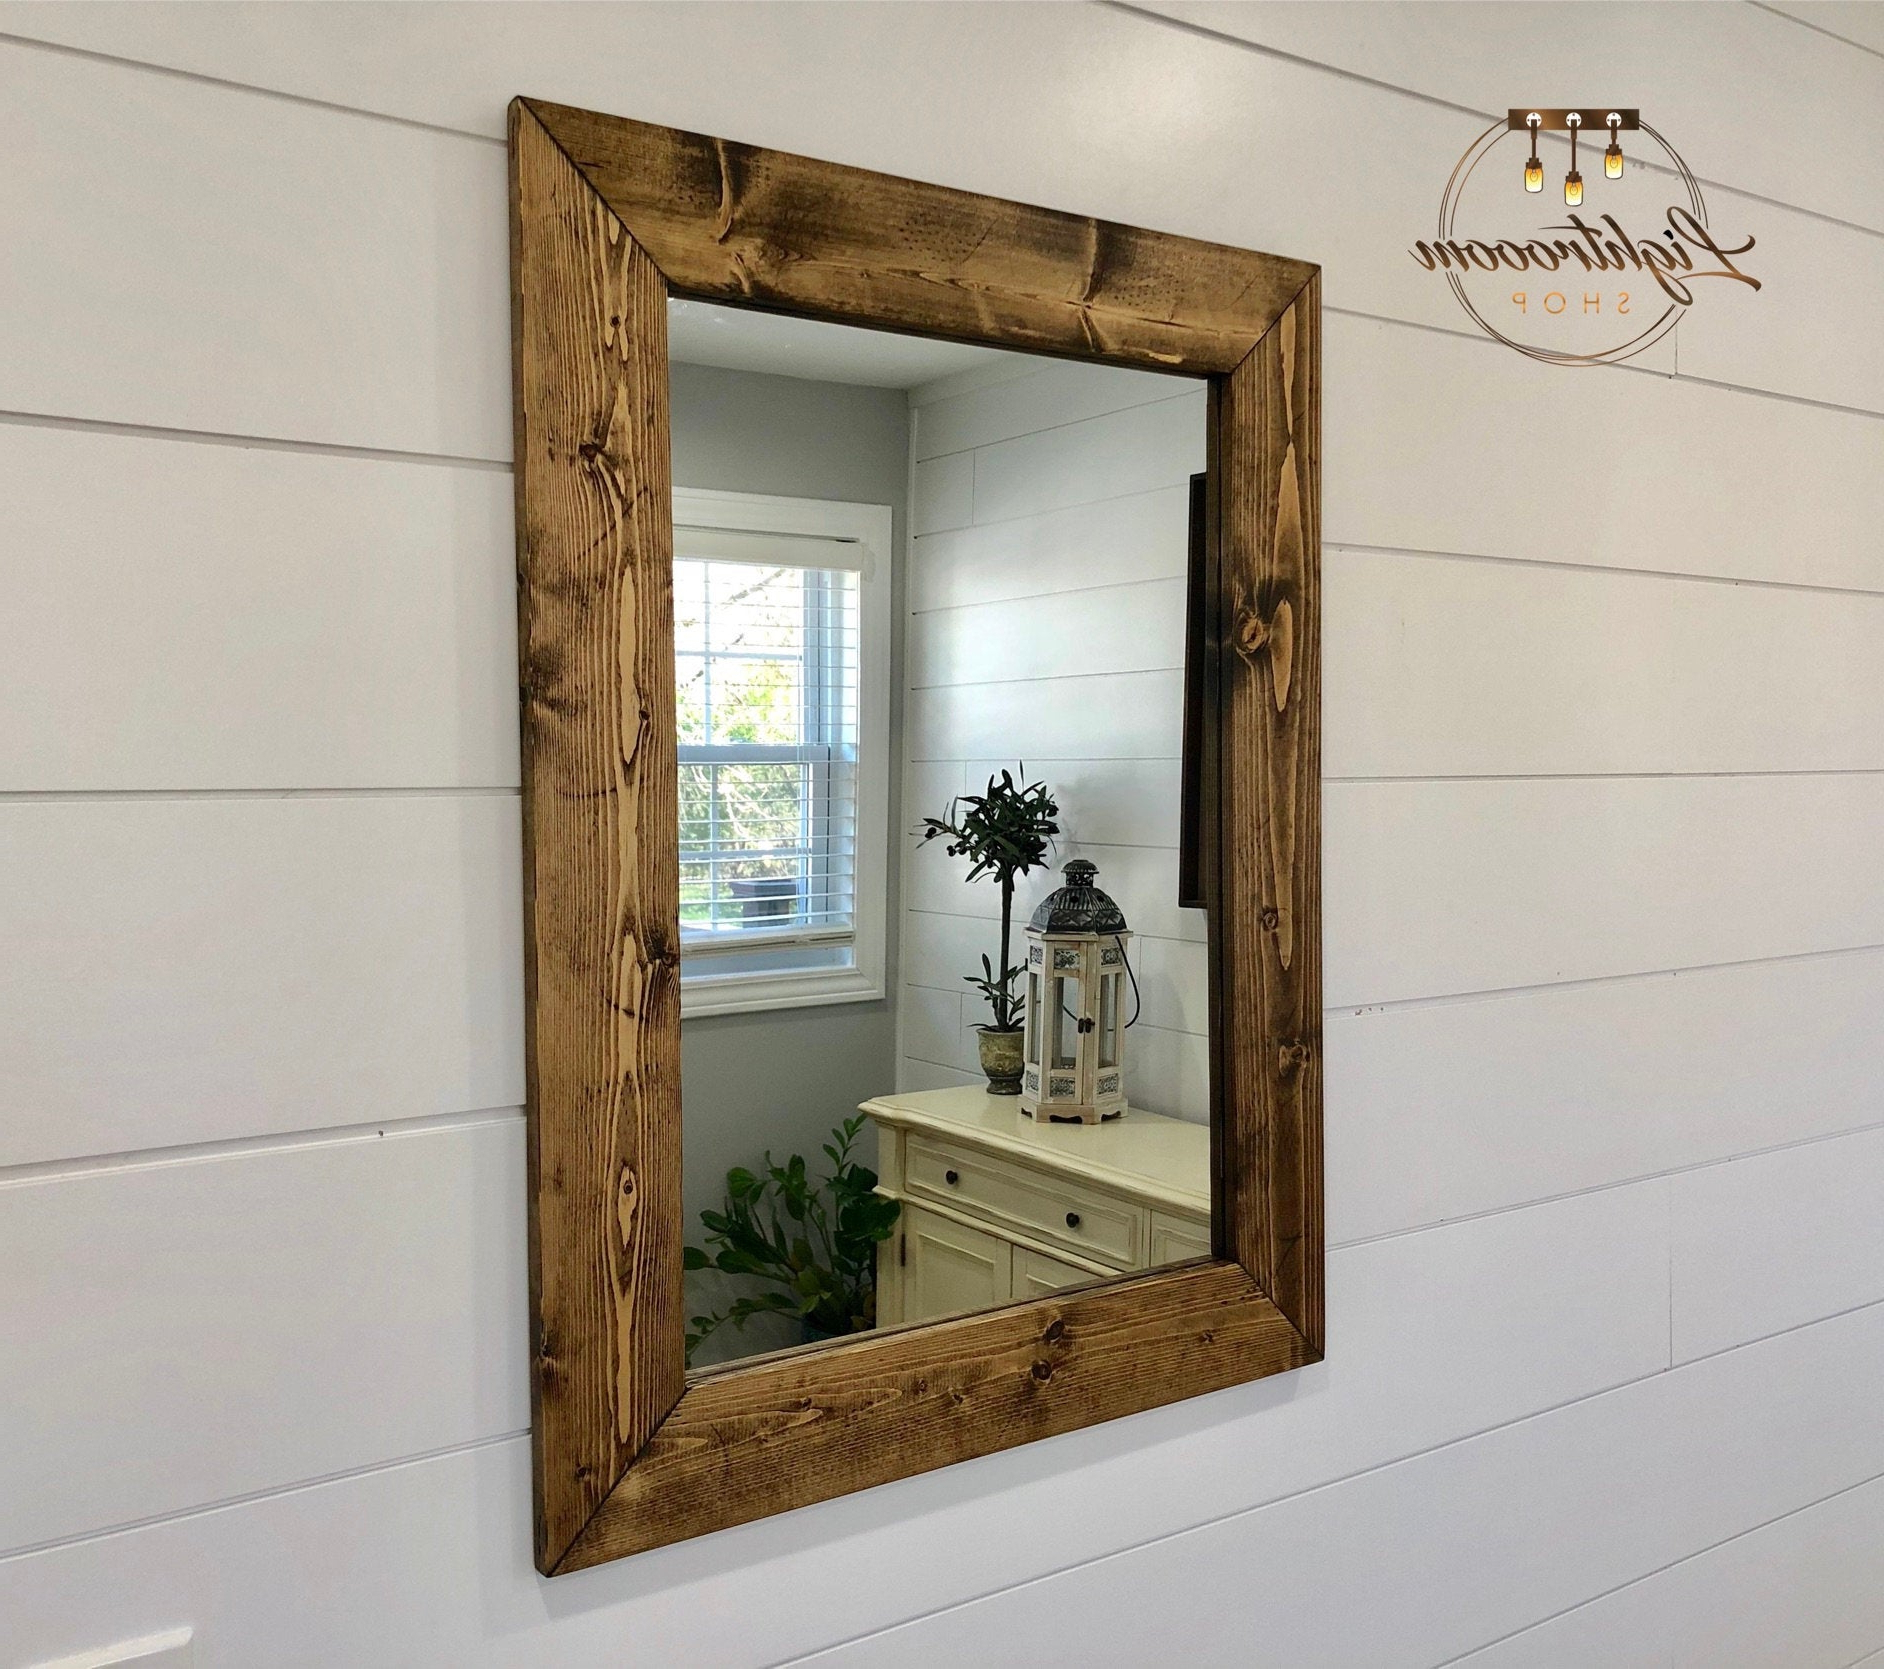 Dark Walnut Mirror, Wood Frame Mirror, Handmade Rustic Wood Mirror, Bathroom Mirror, Framed Wall Mirror, Vanity Mirror, Large Mirror, Modern Inside Most Current Large Wood Framed Wall Mirrors (View 10 of 20)